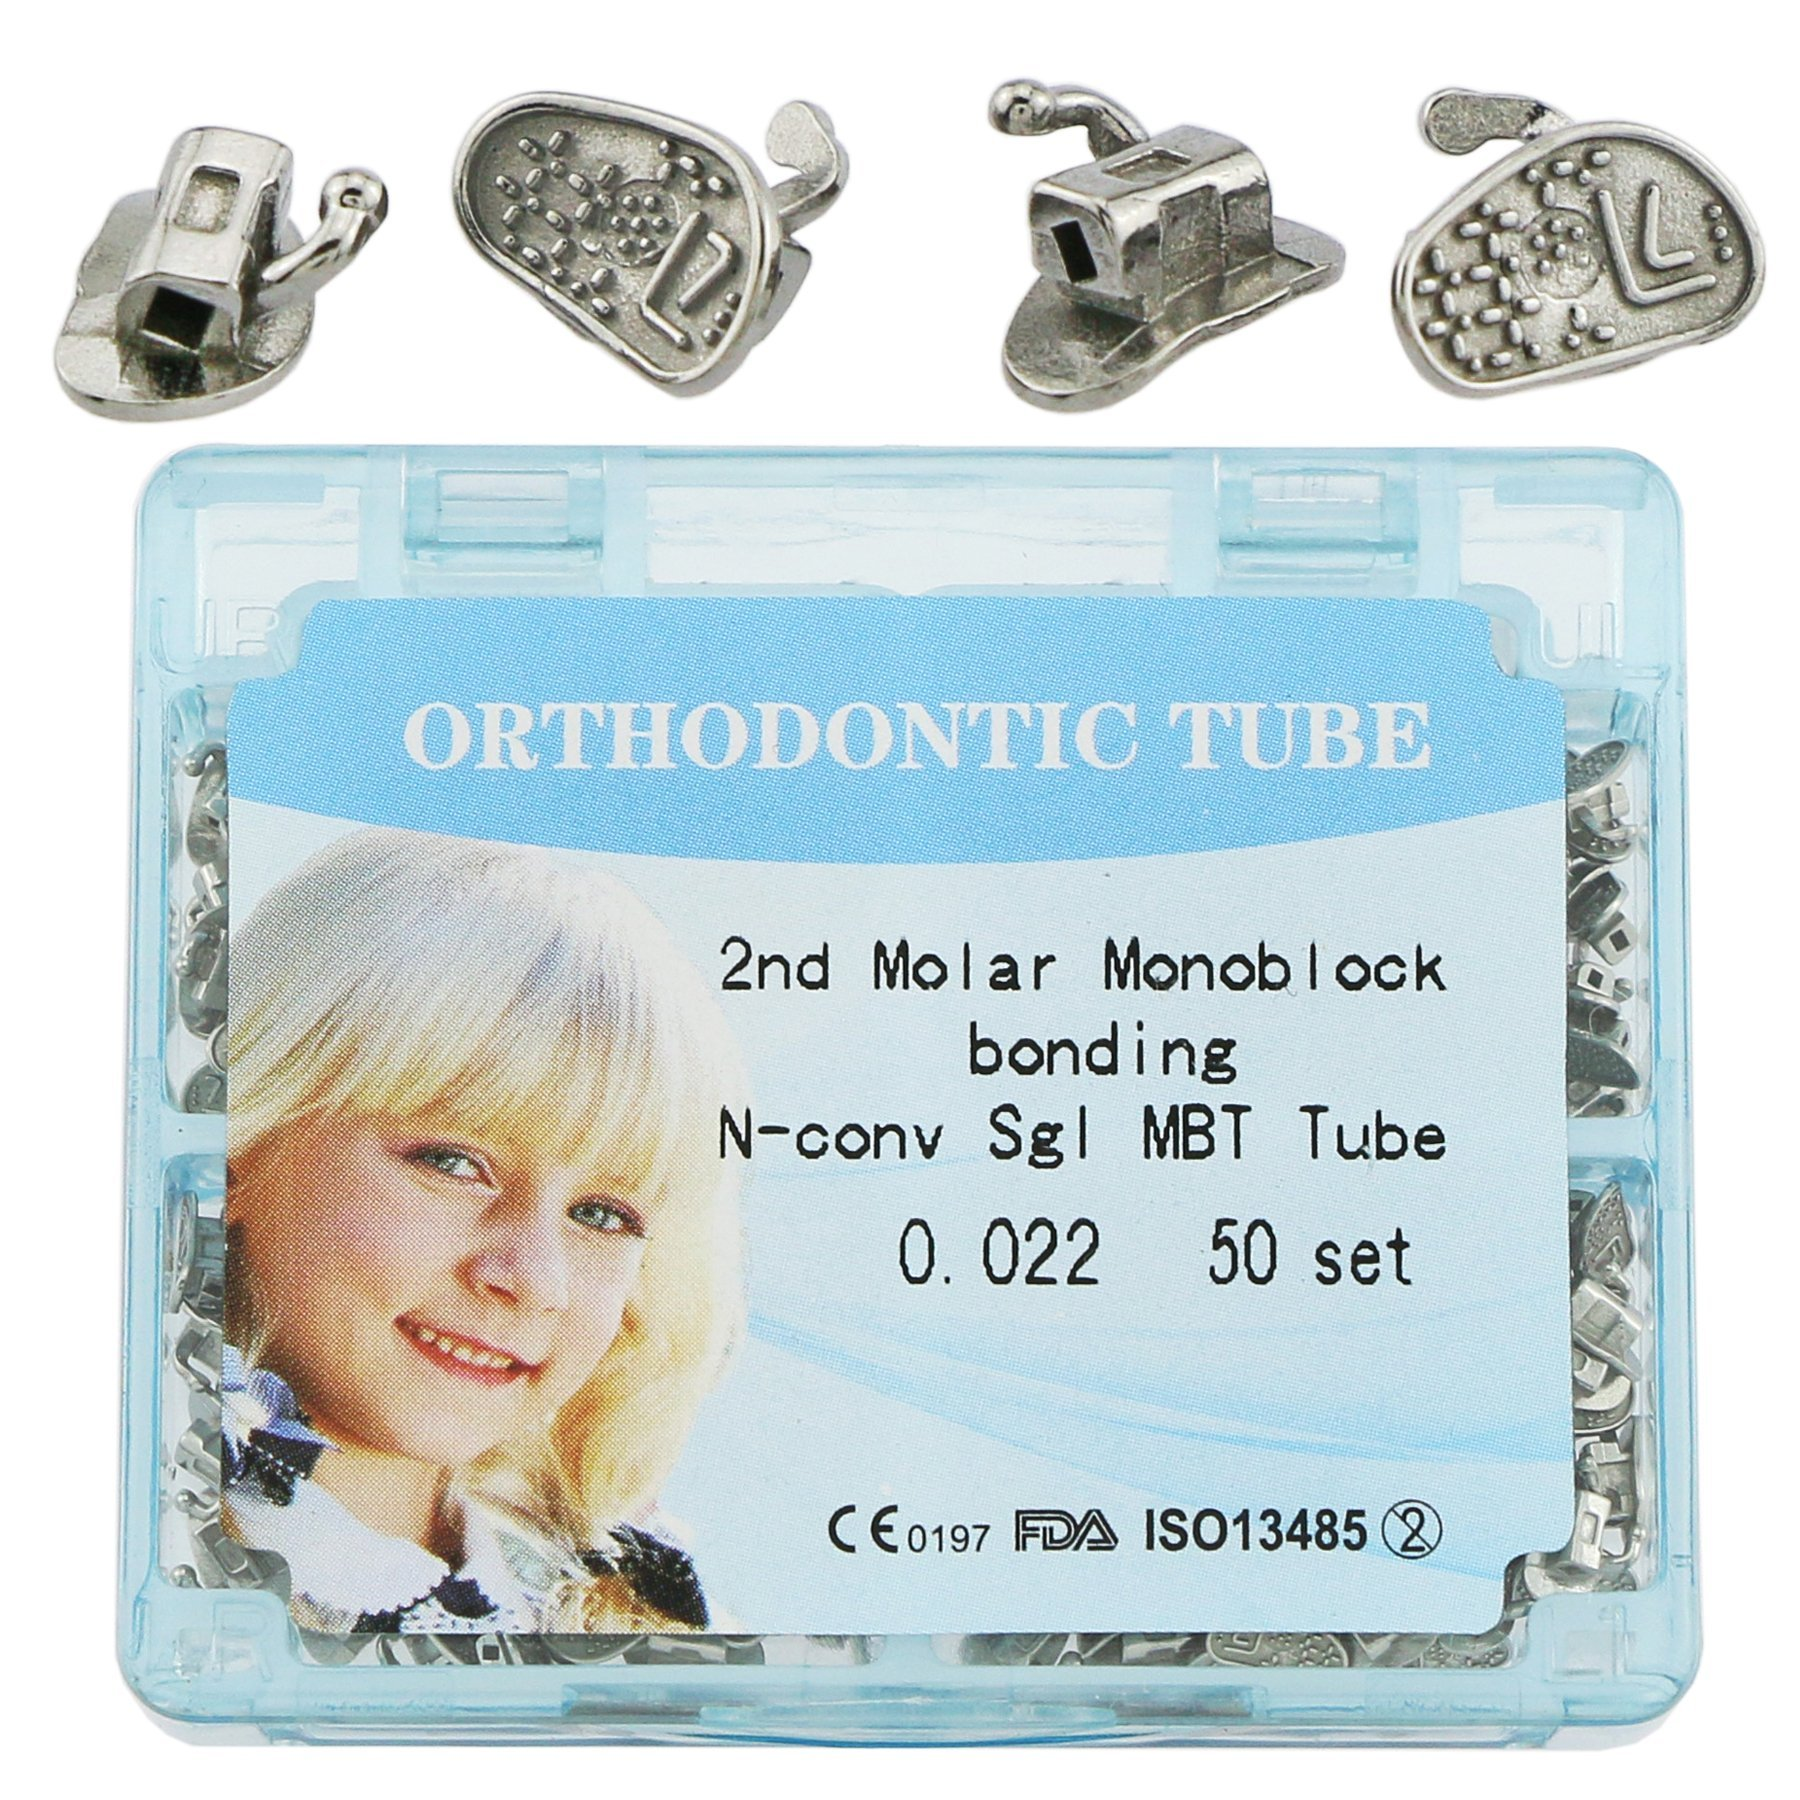 Dental Tubes MBT 0.022 the SECOND Molar Orthodontic Tubes Bonding non-convertible Monoblock Single Buccal tubes 50 Sets,200 Pieces(FDA PROVED)